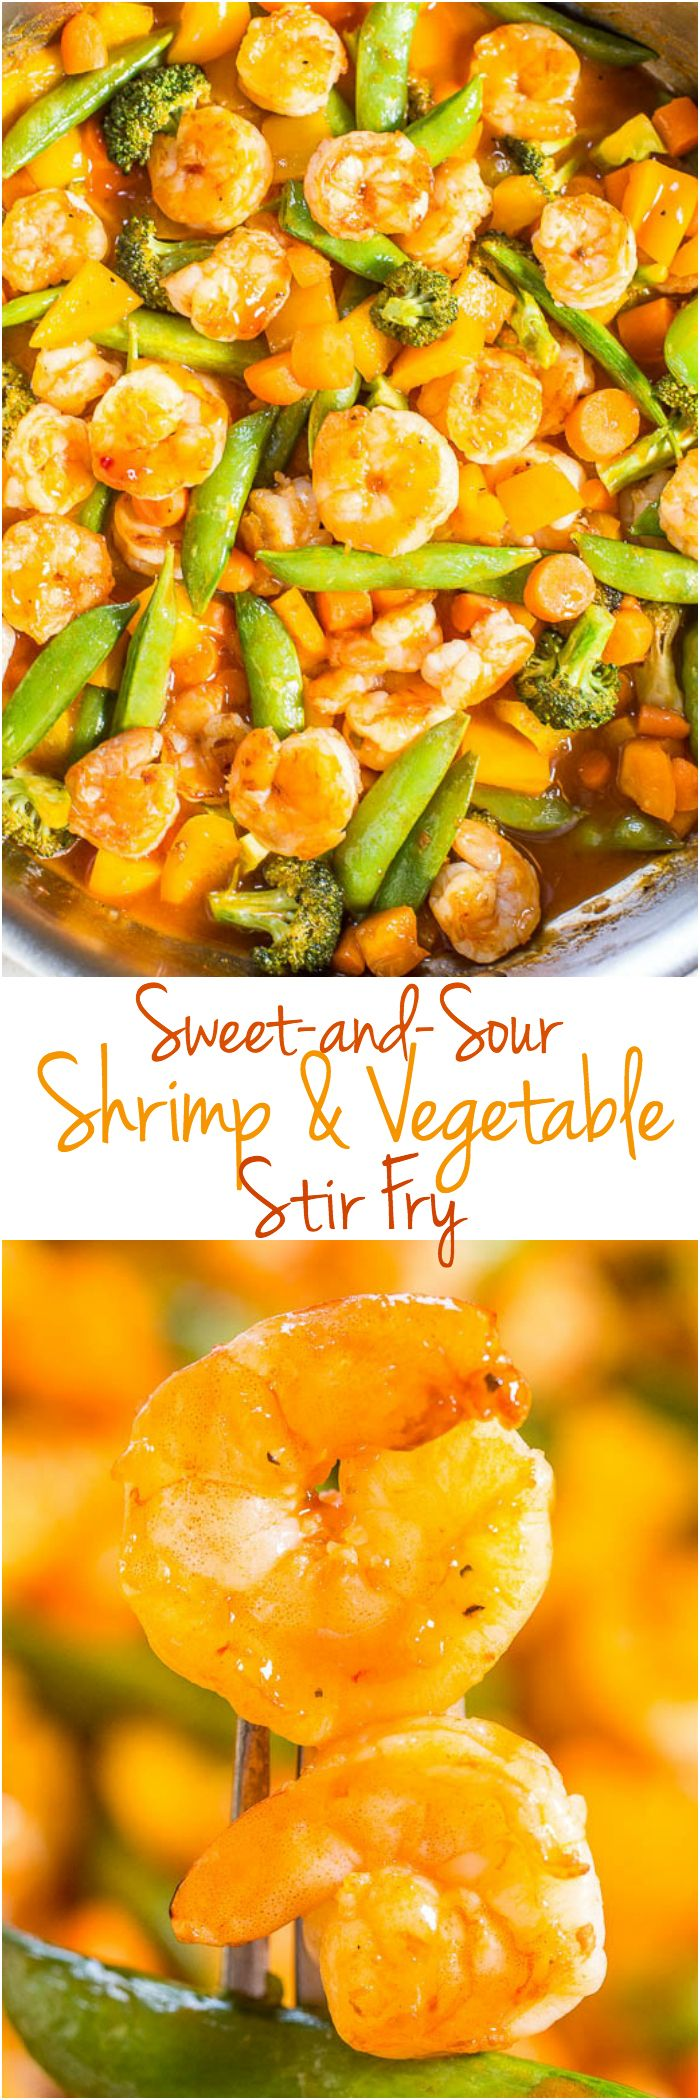 Sweet-and-Sour Shrimp and Vegetable Stir Fry - Big juicy shrimp and crunchy veggies coated in tangy sauce are a hit with everyone!! Easy, healthy, ready in 20 minutes, and way better than takeout!! Great for #CincoDeMayo !